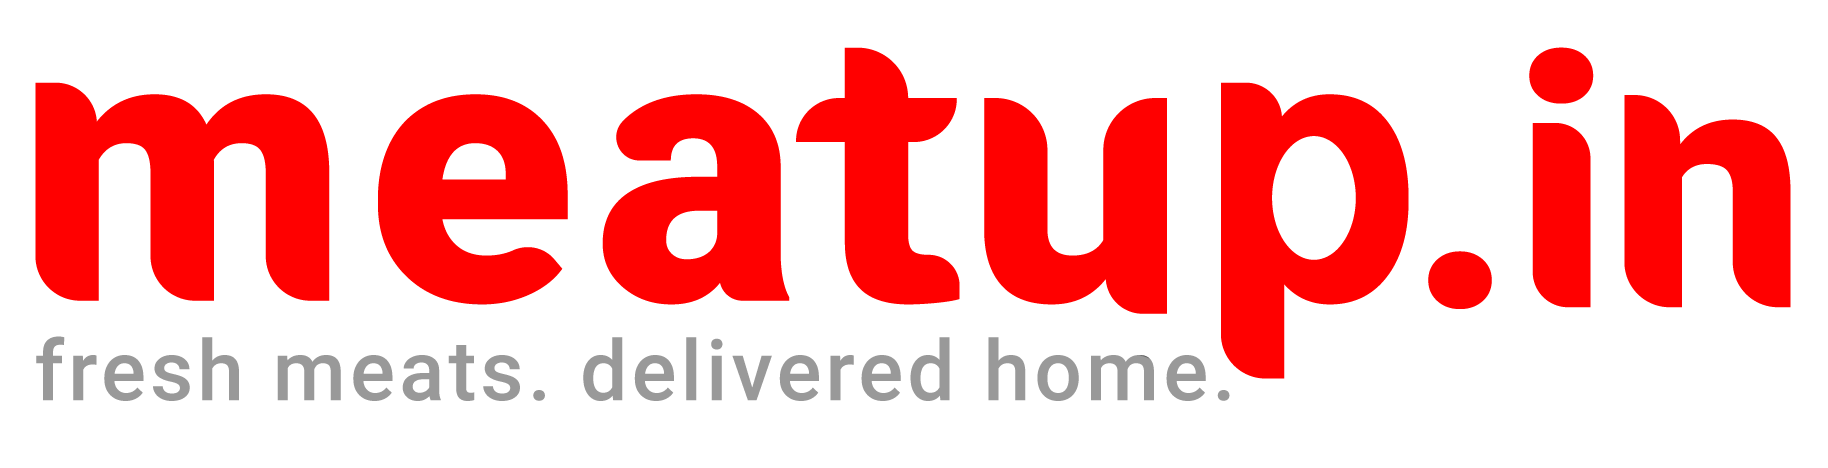 meatup - fresh meats delivered home